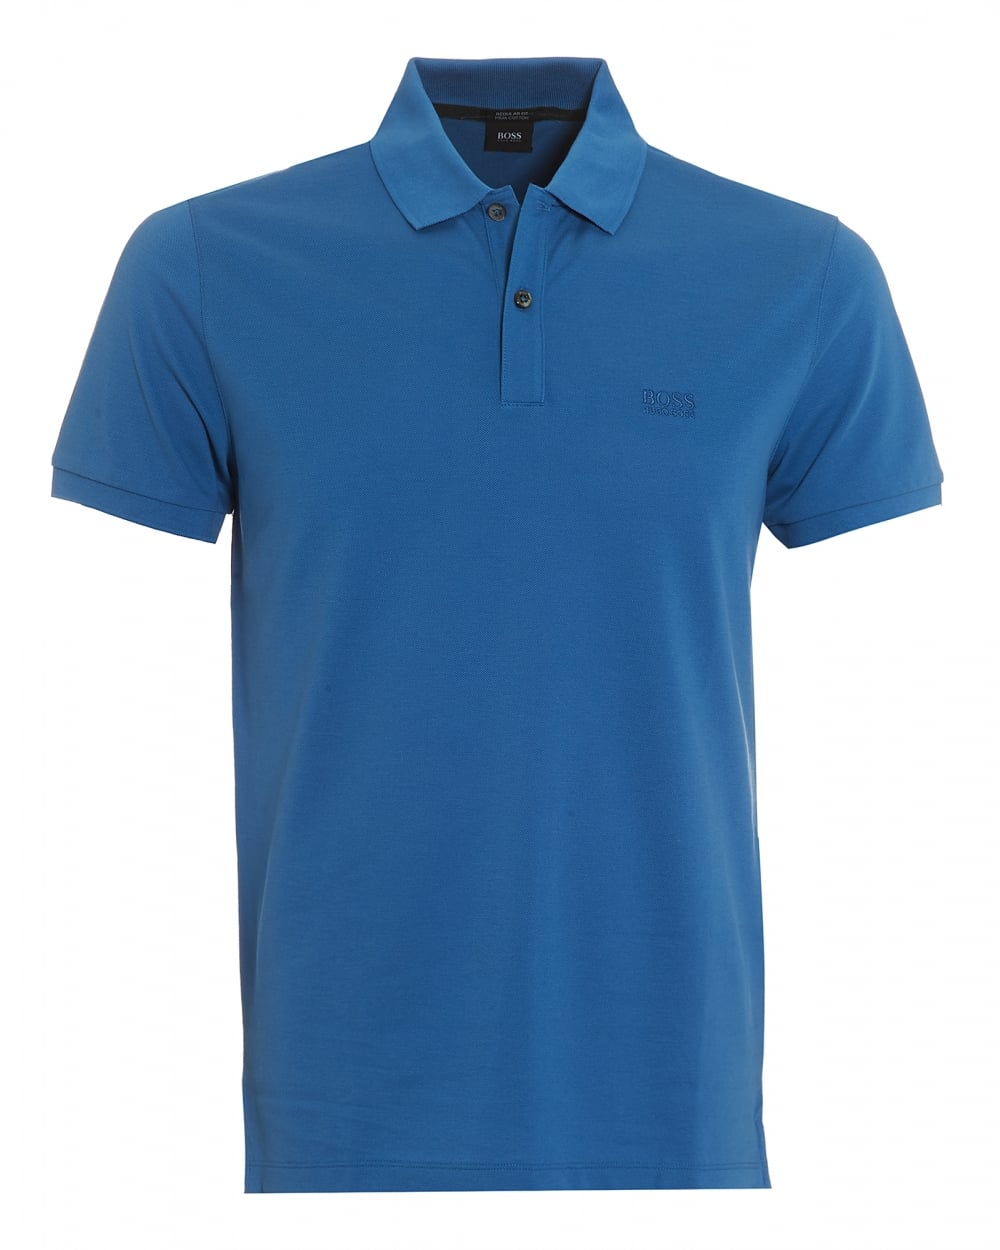 Find great deals on eBay for dark blue polo shirt. Shop with confidence.